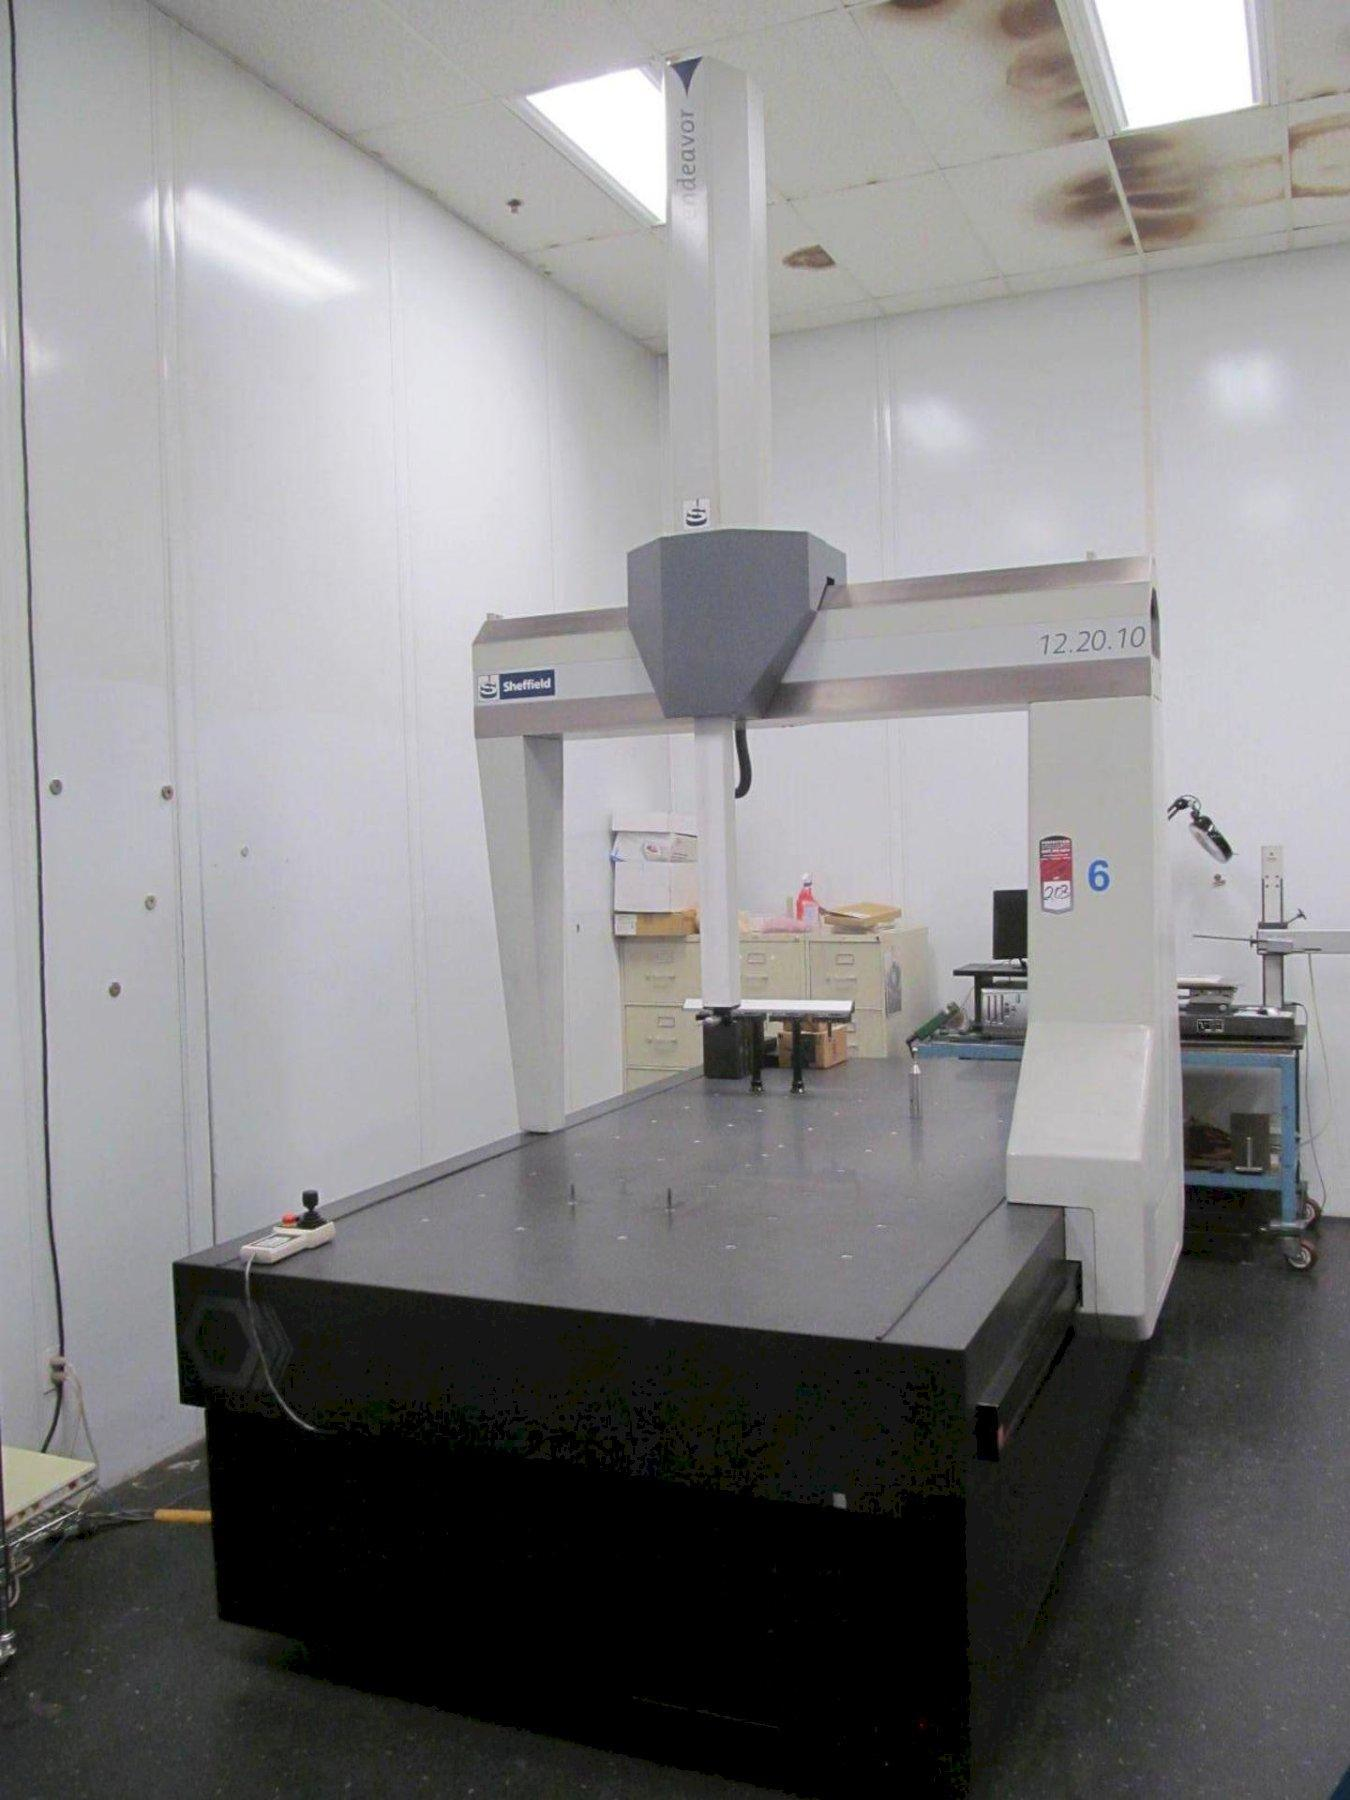 Sheffield Endeavor 12.20.10 Coordinate Measuring Machine (CMM)